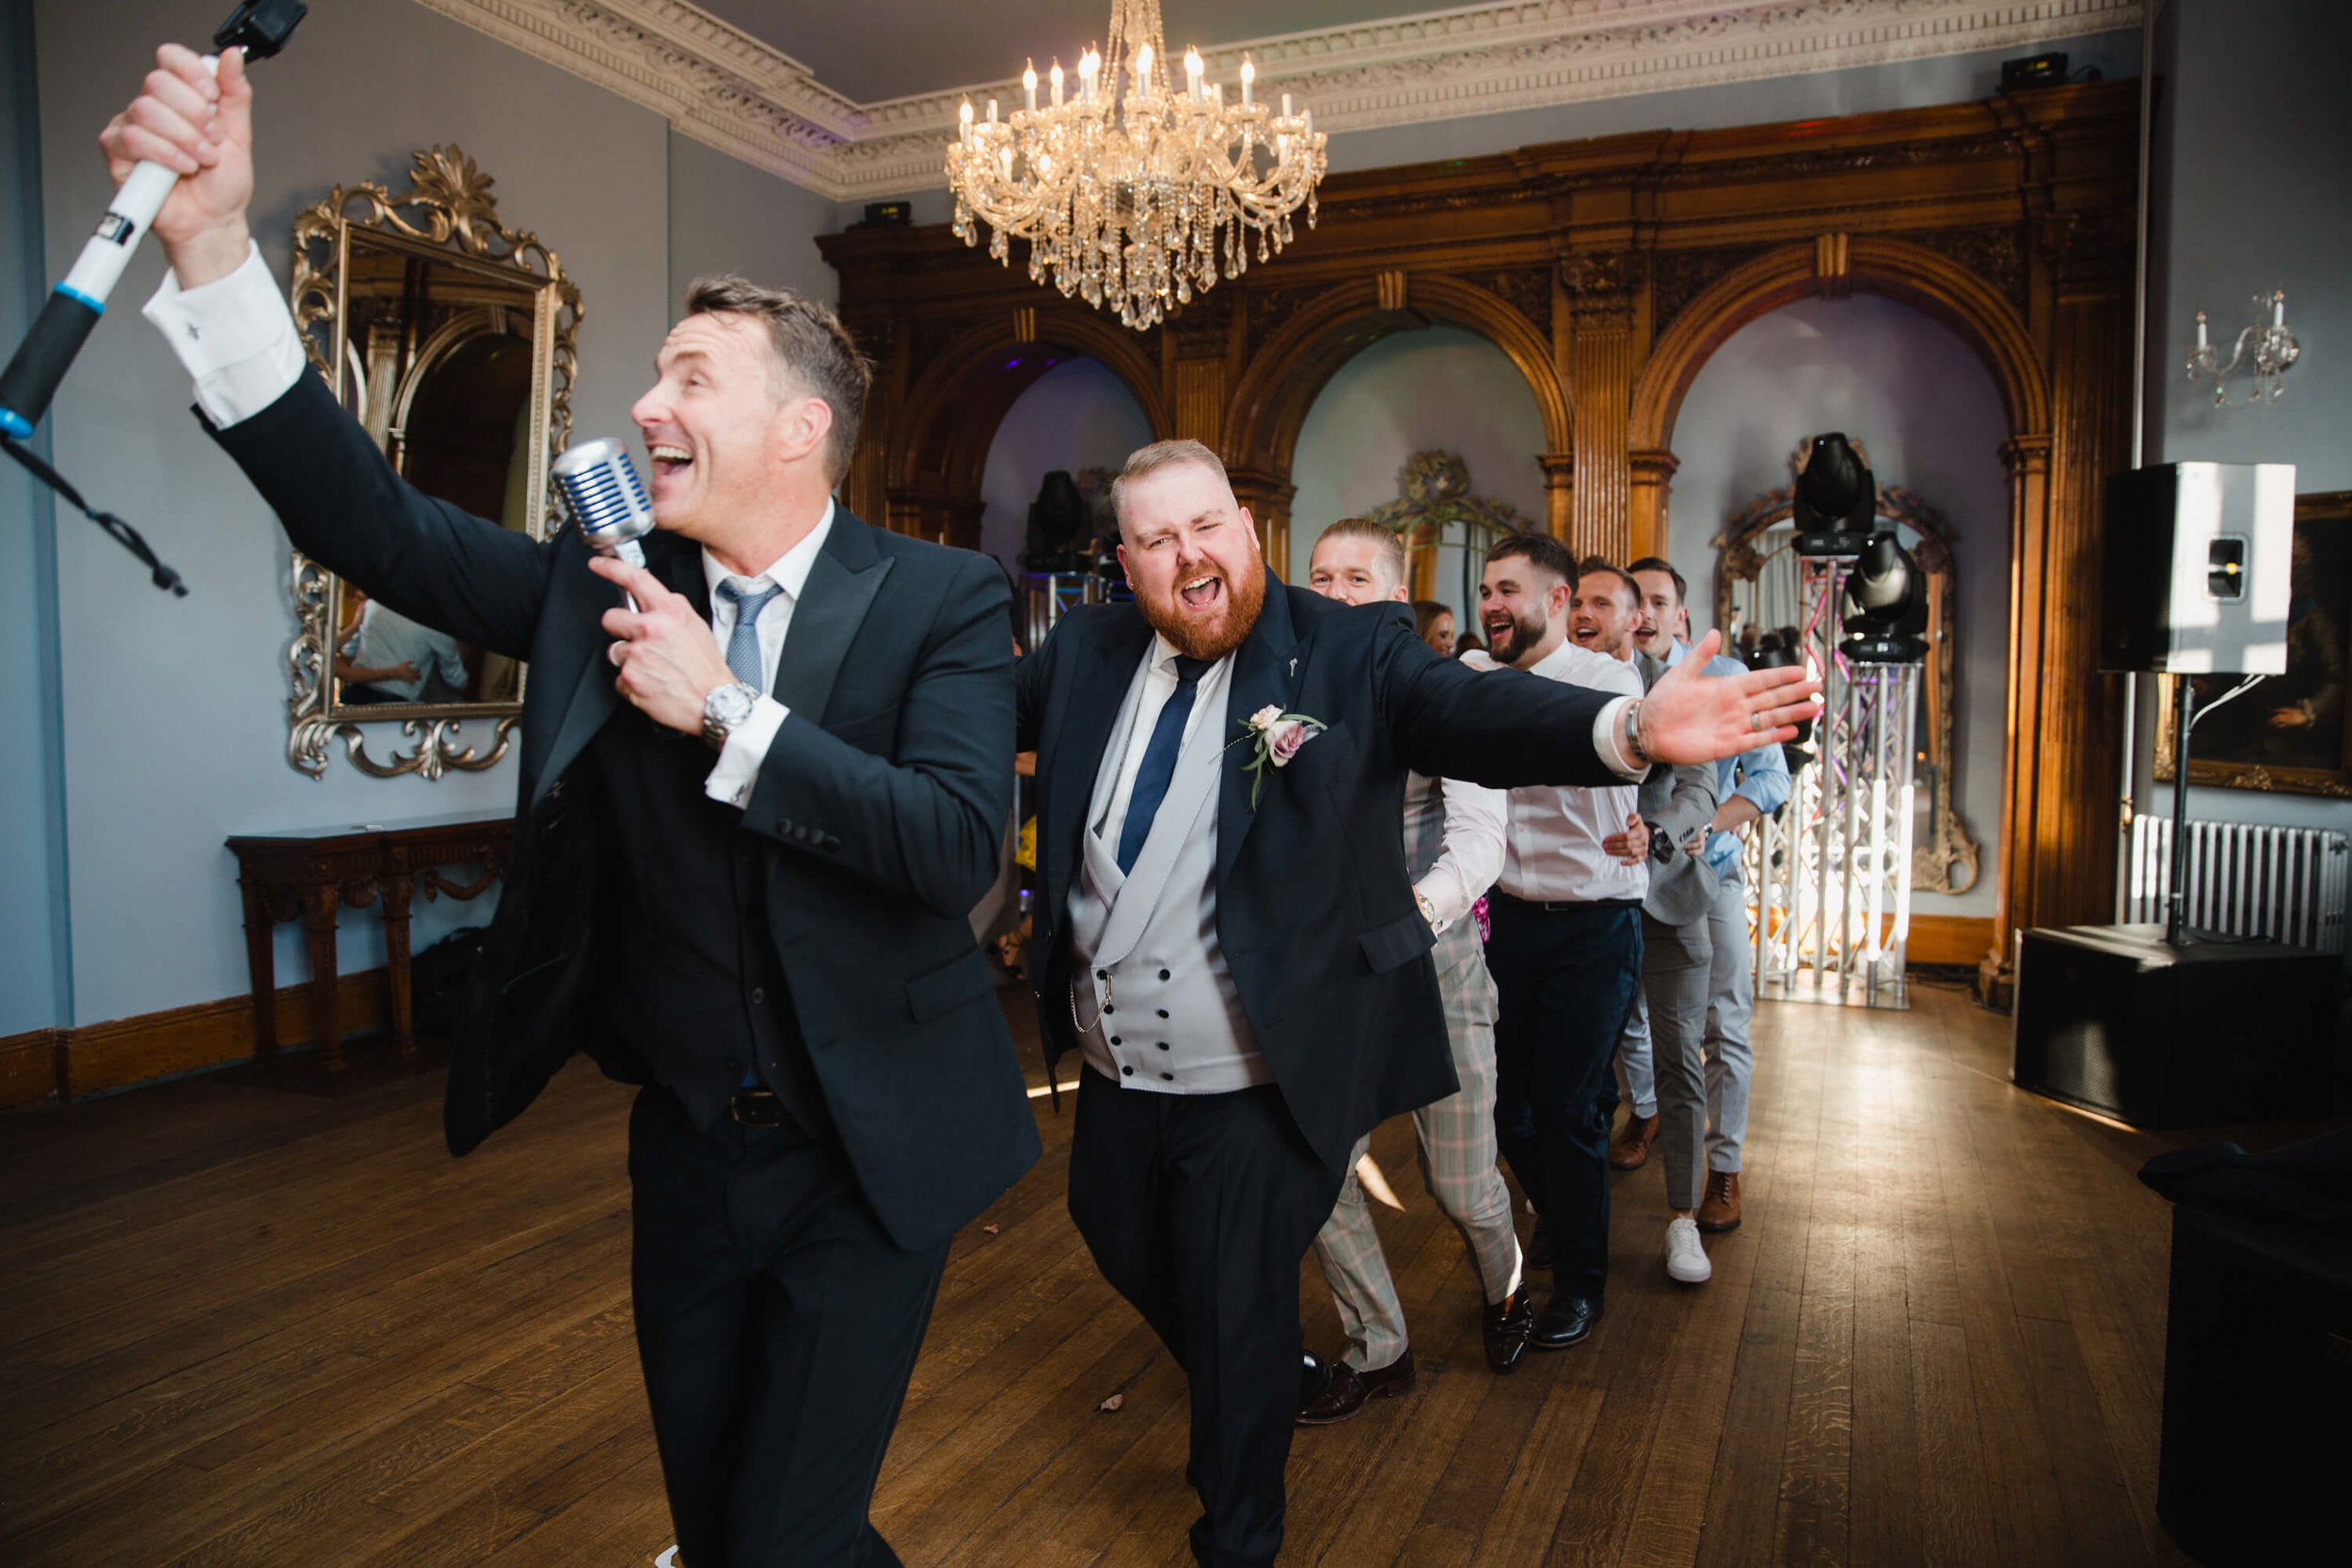 groom taking part in dancing at haigh hall